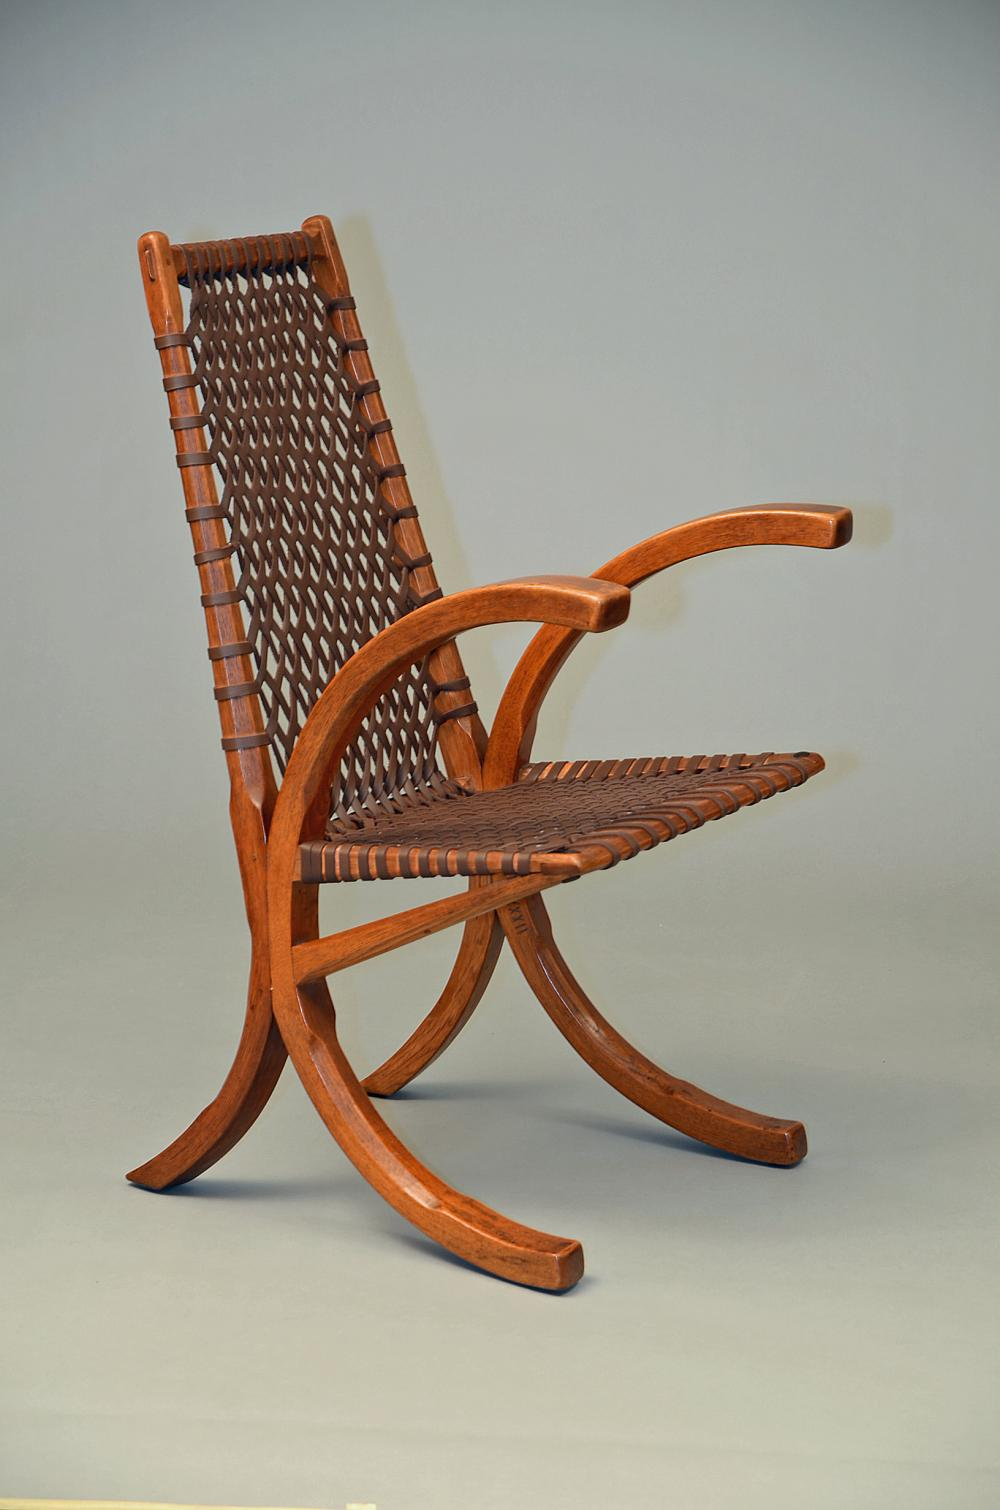 Wharton_Esherick_wagon_wheel_chair_from_Moderne_Gallery.jpg